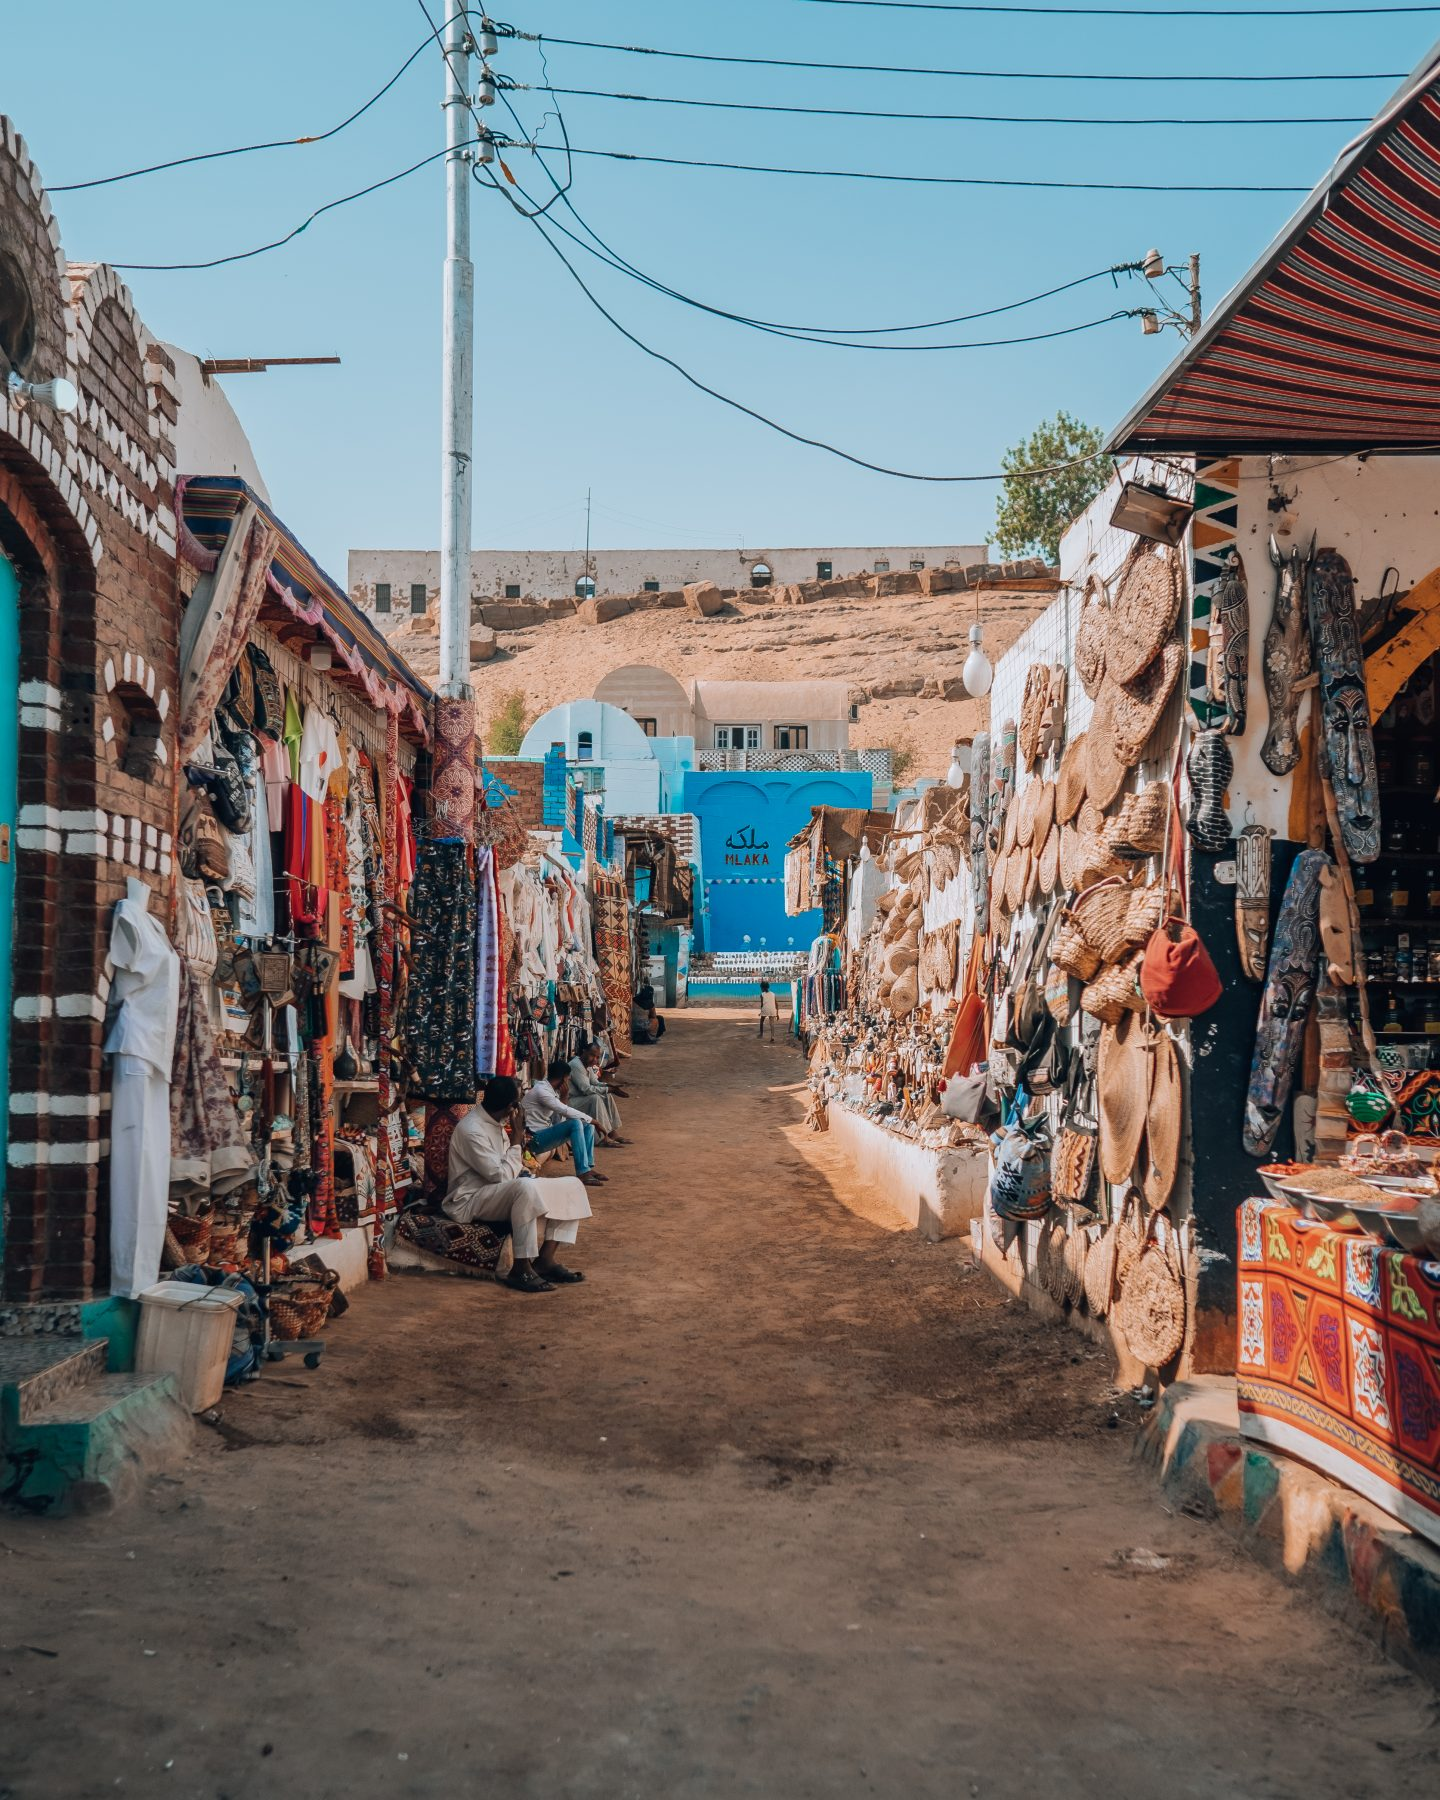 The local market in the Nubian Village in Aswan